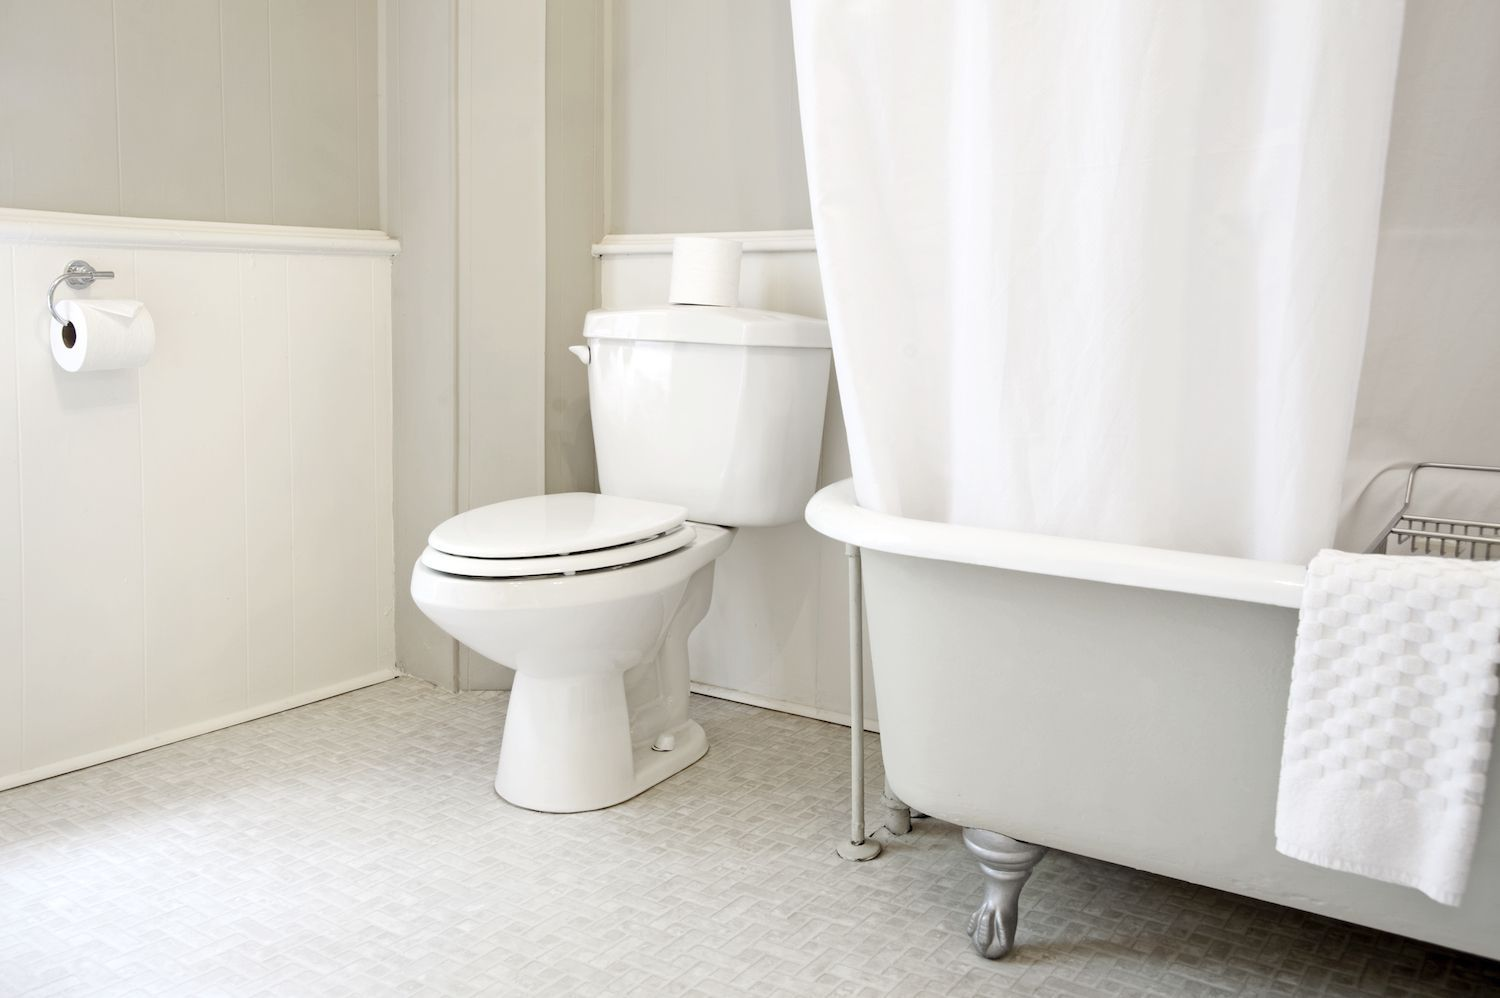 Moving A Toilet Is Complex But It Is Often Necessary For Bathroom Remodels Learn How To Move A Toilet As Eas In 2021 Bathroom Fan Light Bathroom Fan Bathroom Plumbing